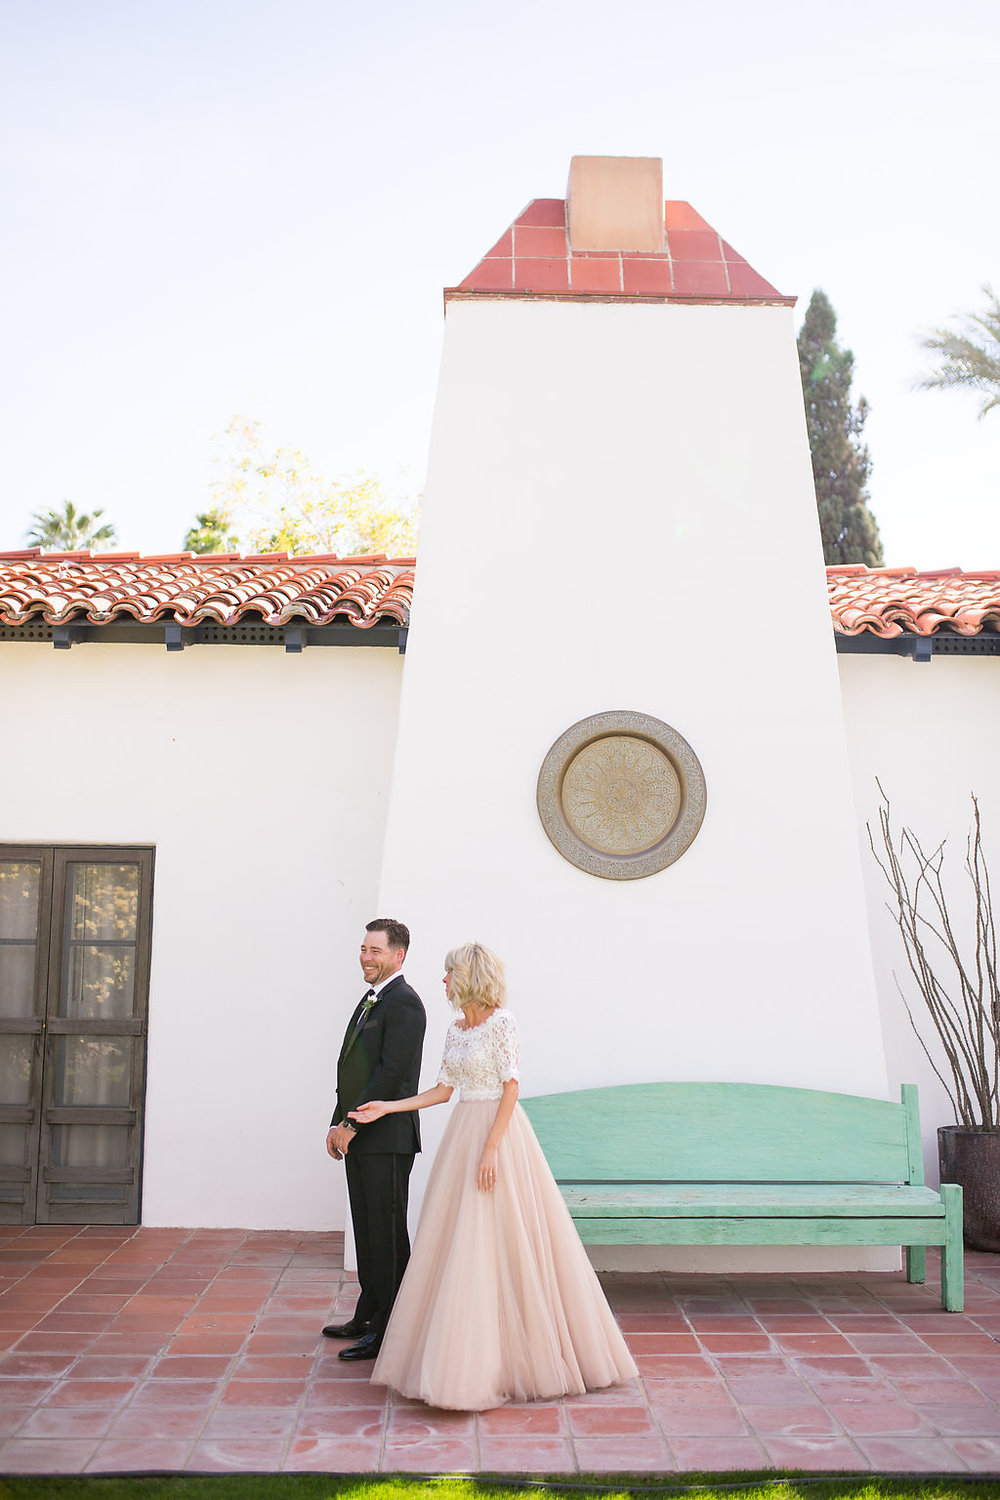 LA CHUREYA ESTATE WEDDING_BETSI EWING STUDIO 232.JPG